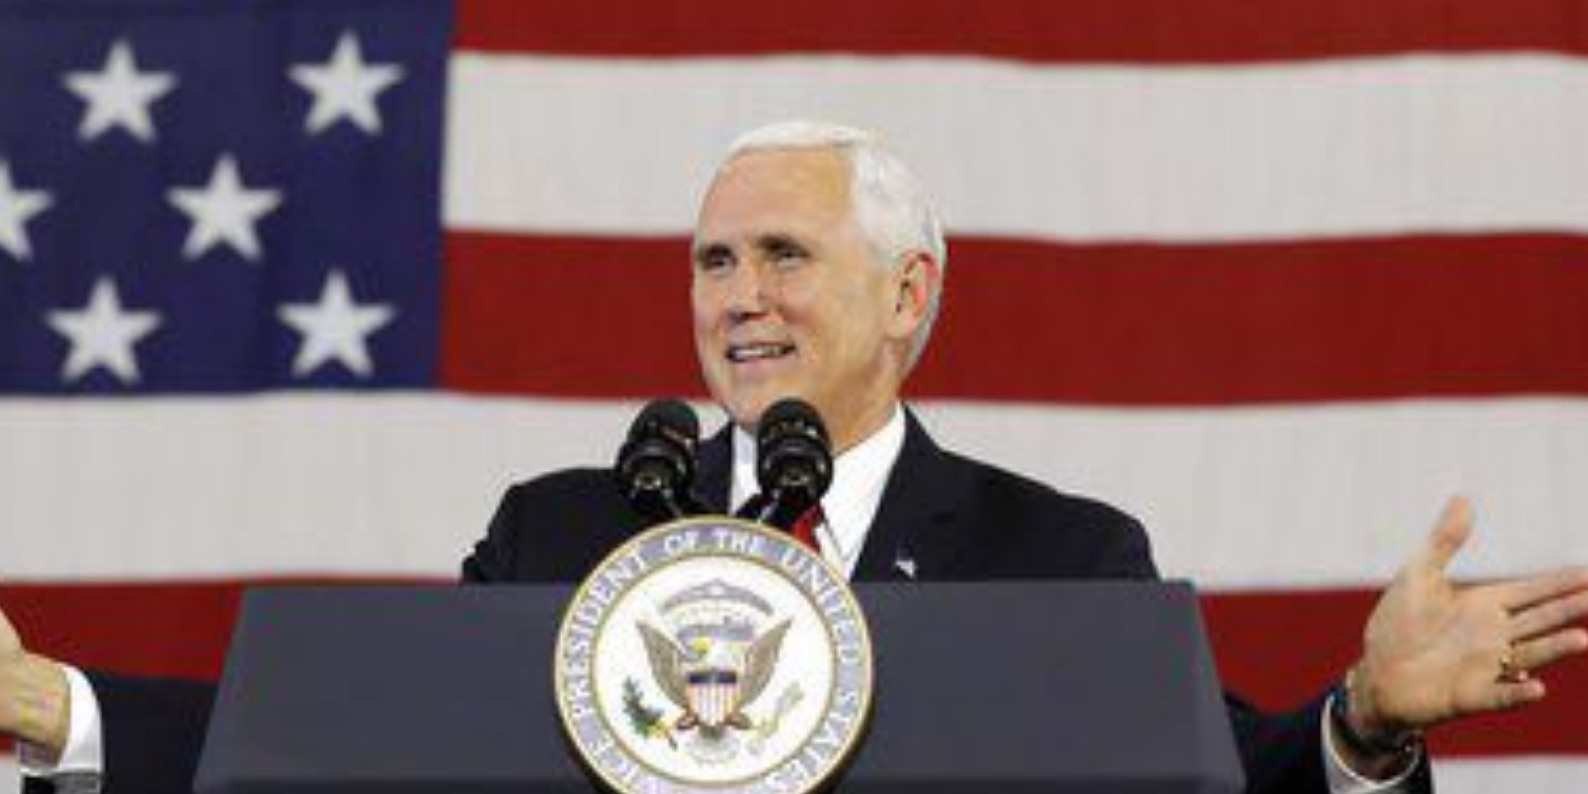 In Virginia, Pence stumps for 3 GOP congressional candidates